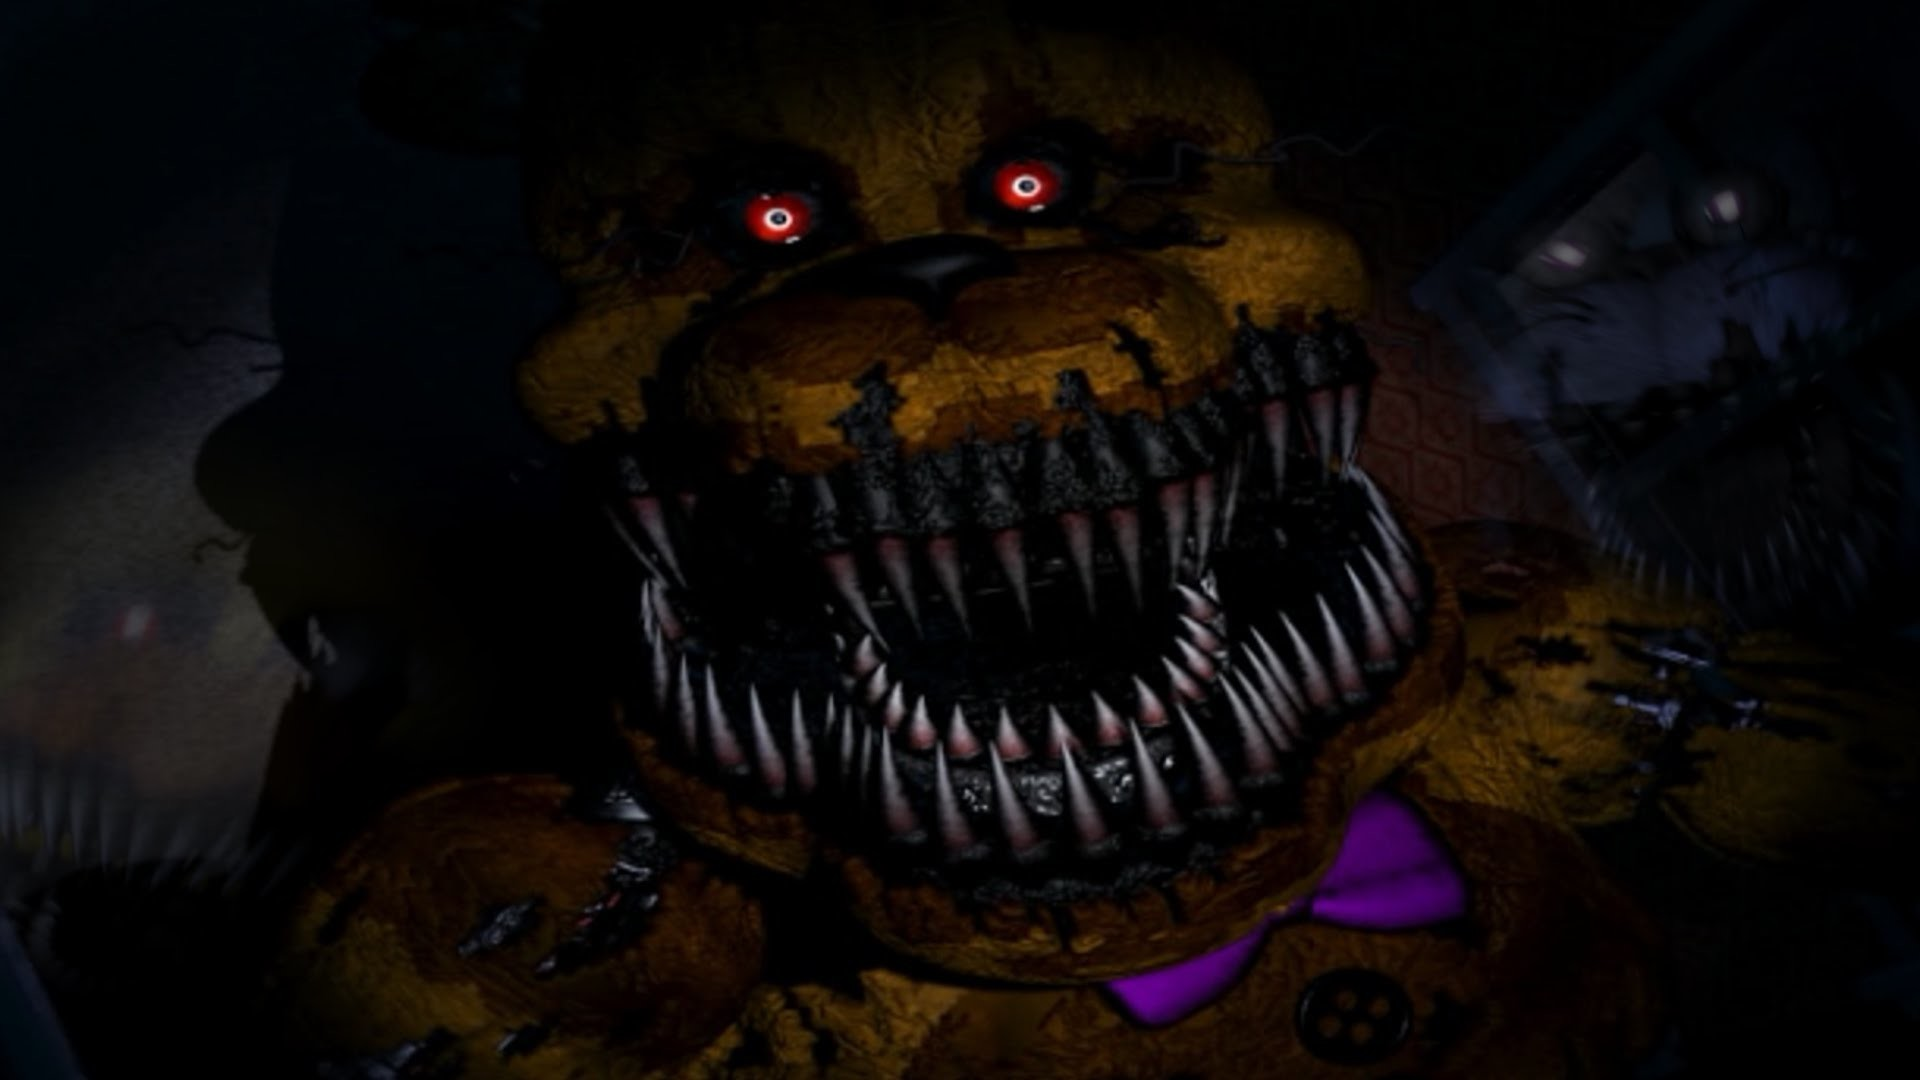 1920x1080 Five Nights at Freddy's 4 #5: GOLDEN FREDDY & The Bite of 87!